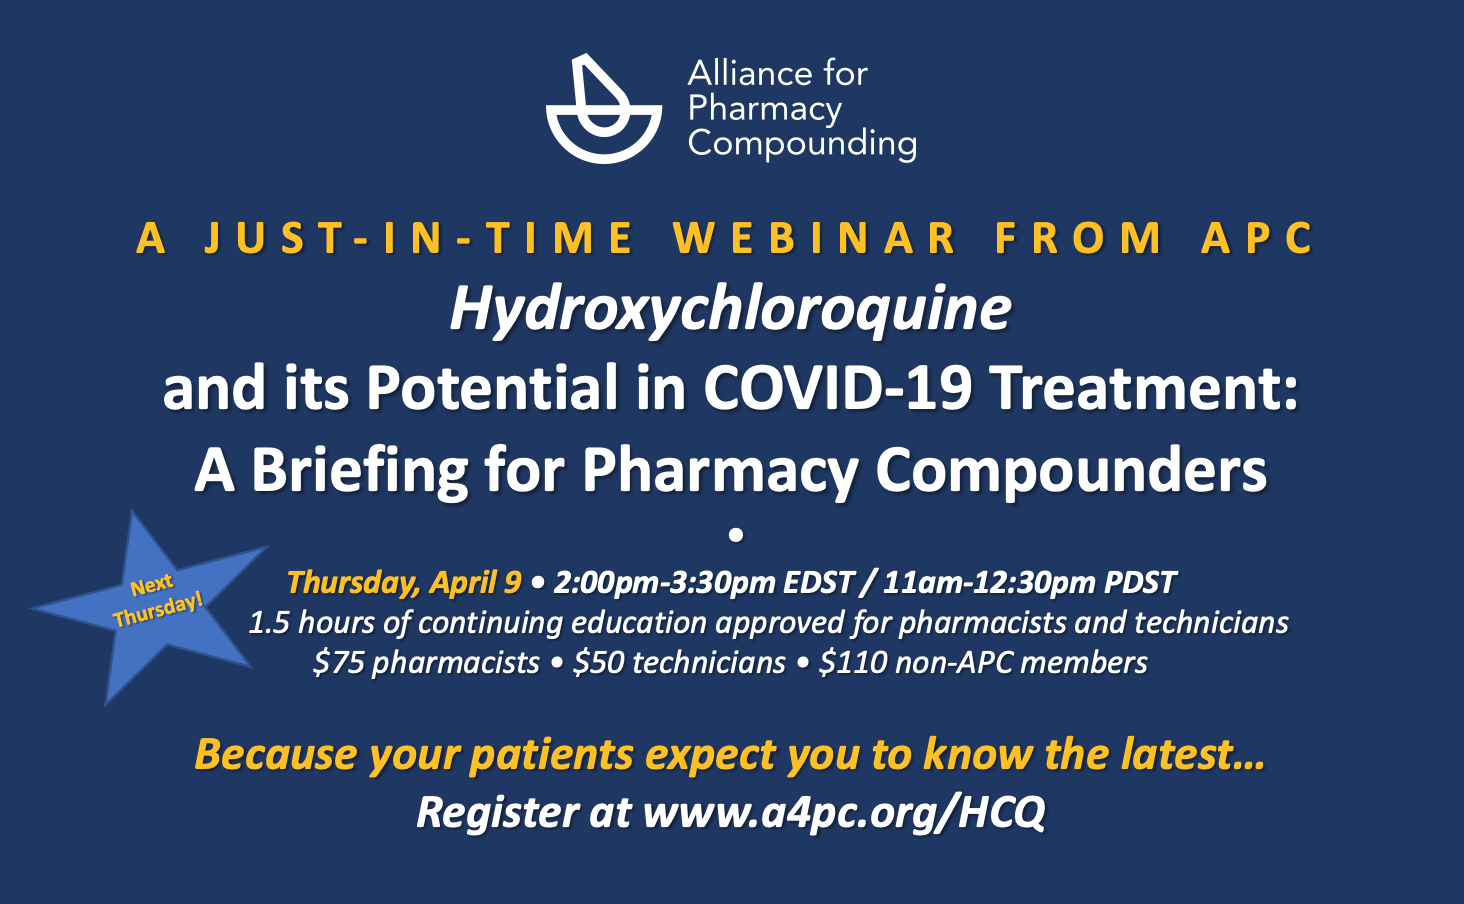 A Just-in-time webinar from APC - Hydroxychloroquine and its potential in COVID-19 Treatment.